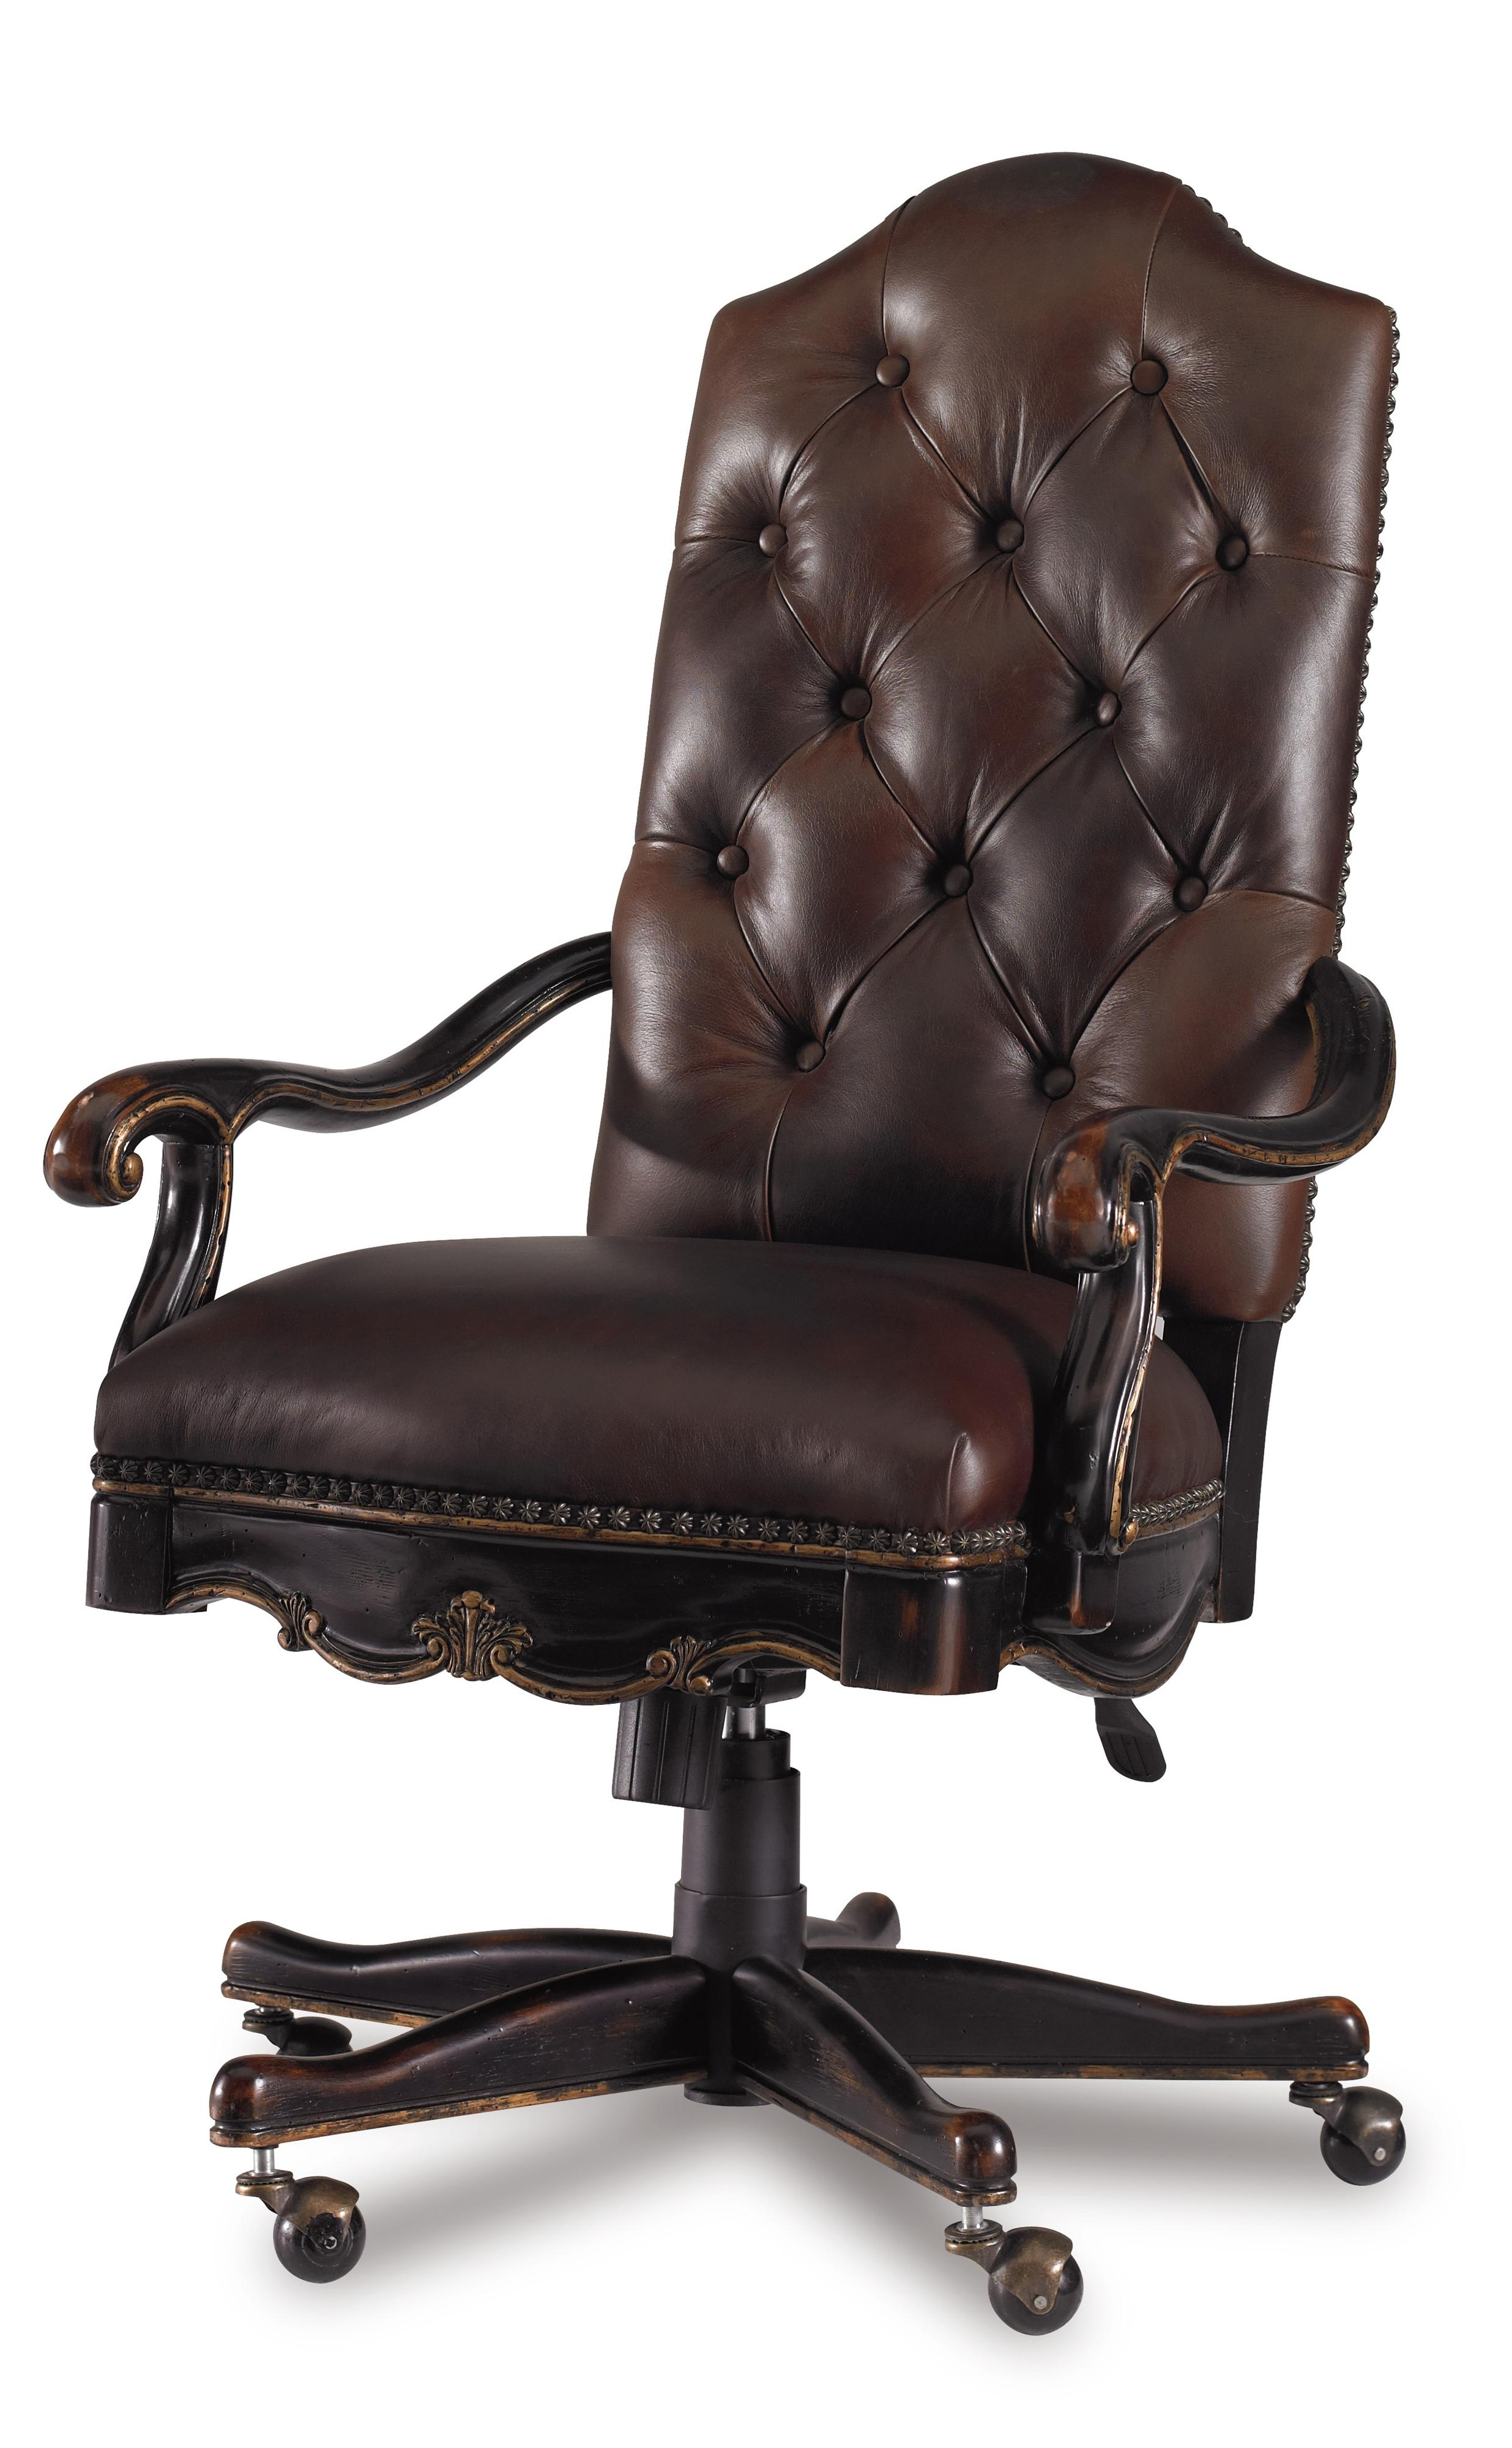 Hooker Furniture Grandover Tufted Leather Executive Office Chair Regarding Most Up To Date Executive Office Chairs (View 11 of 20)